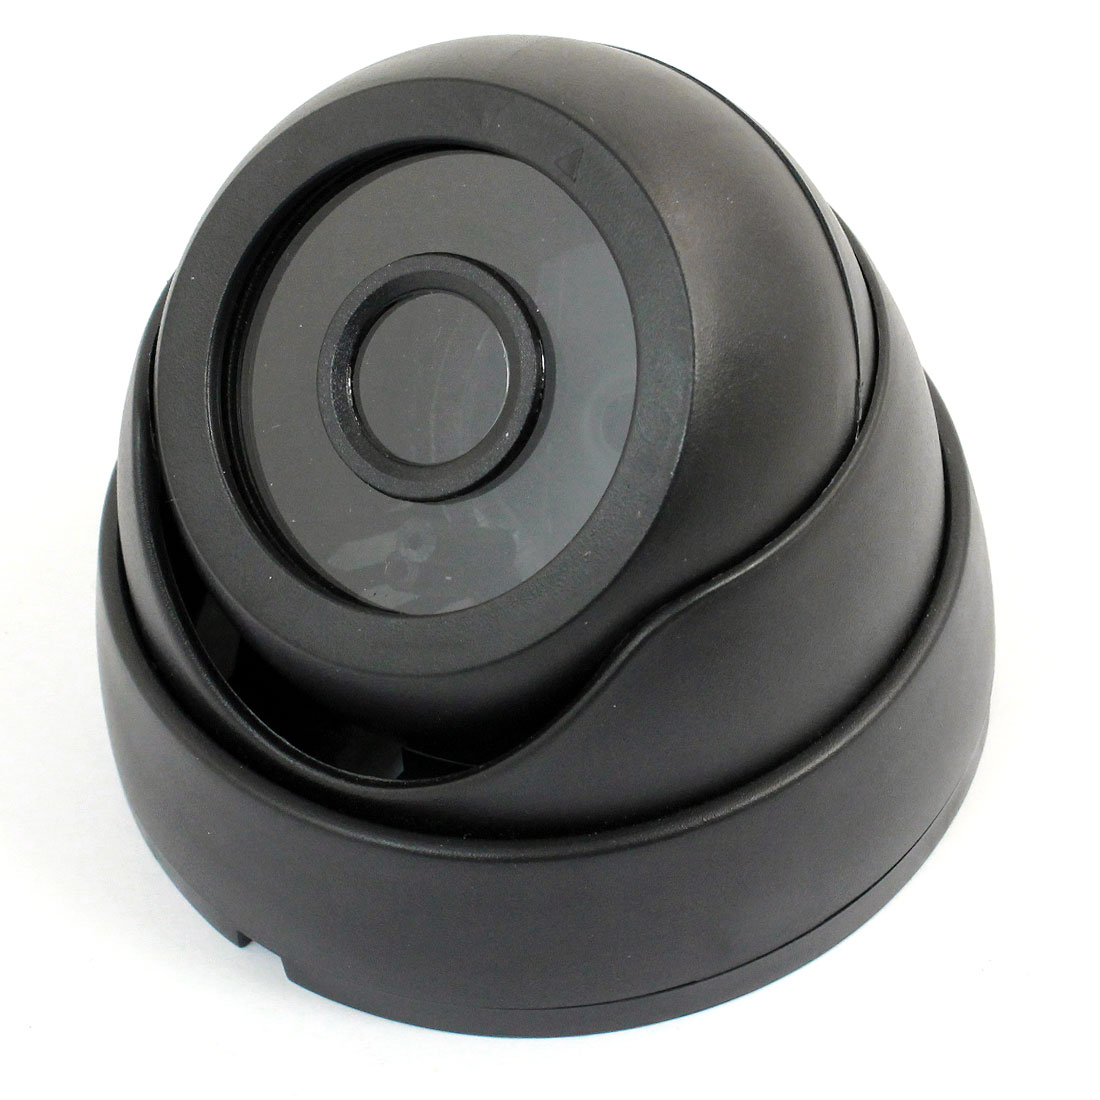 "Surveillance Black Plastic CCTV Dome Camera Housing Case 3.6"" Dia"